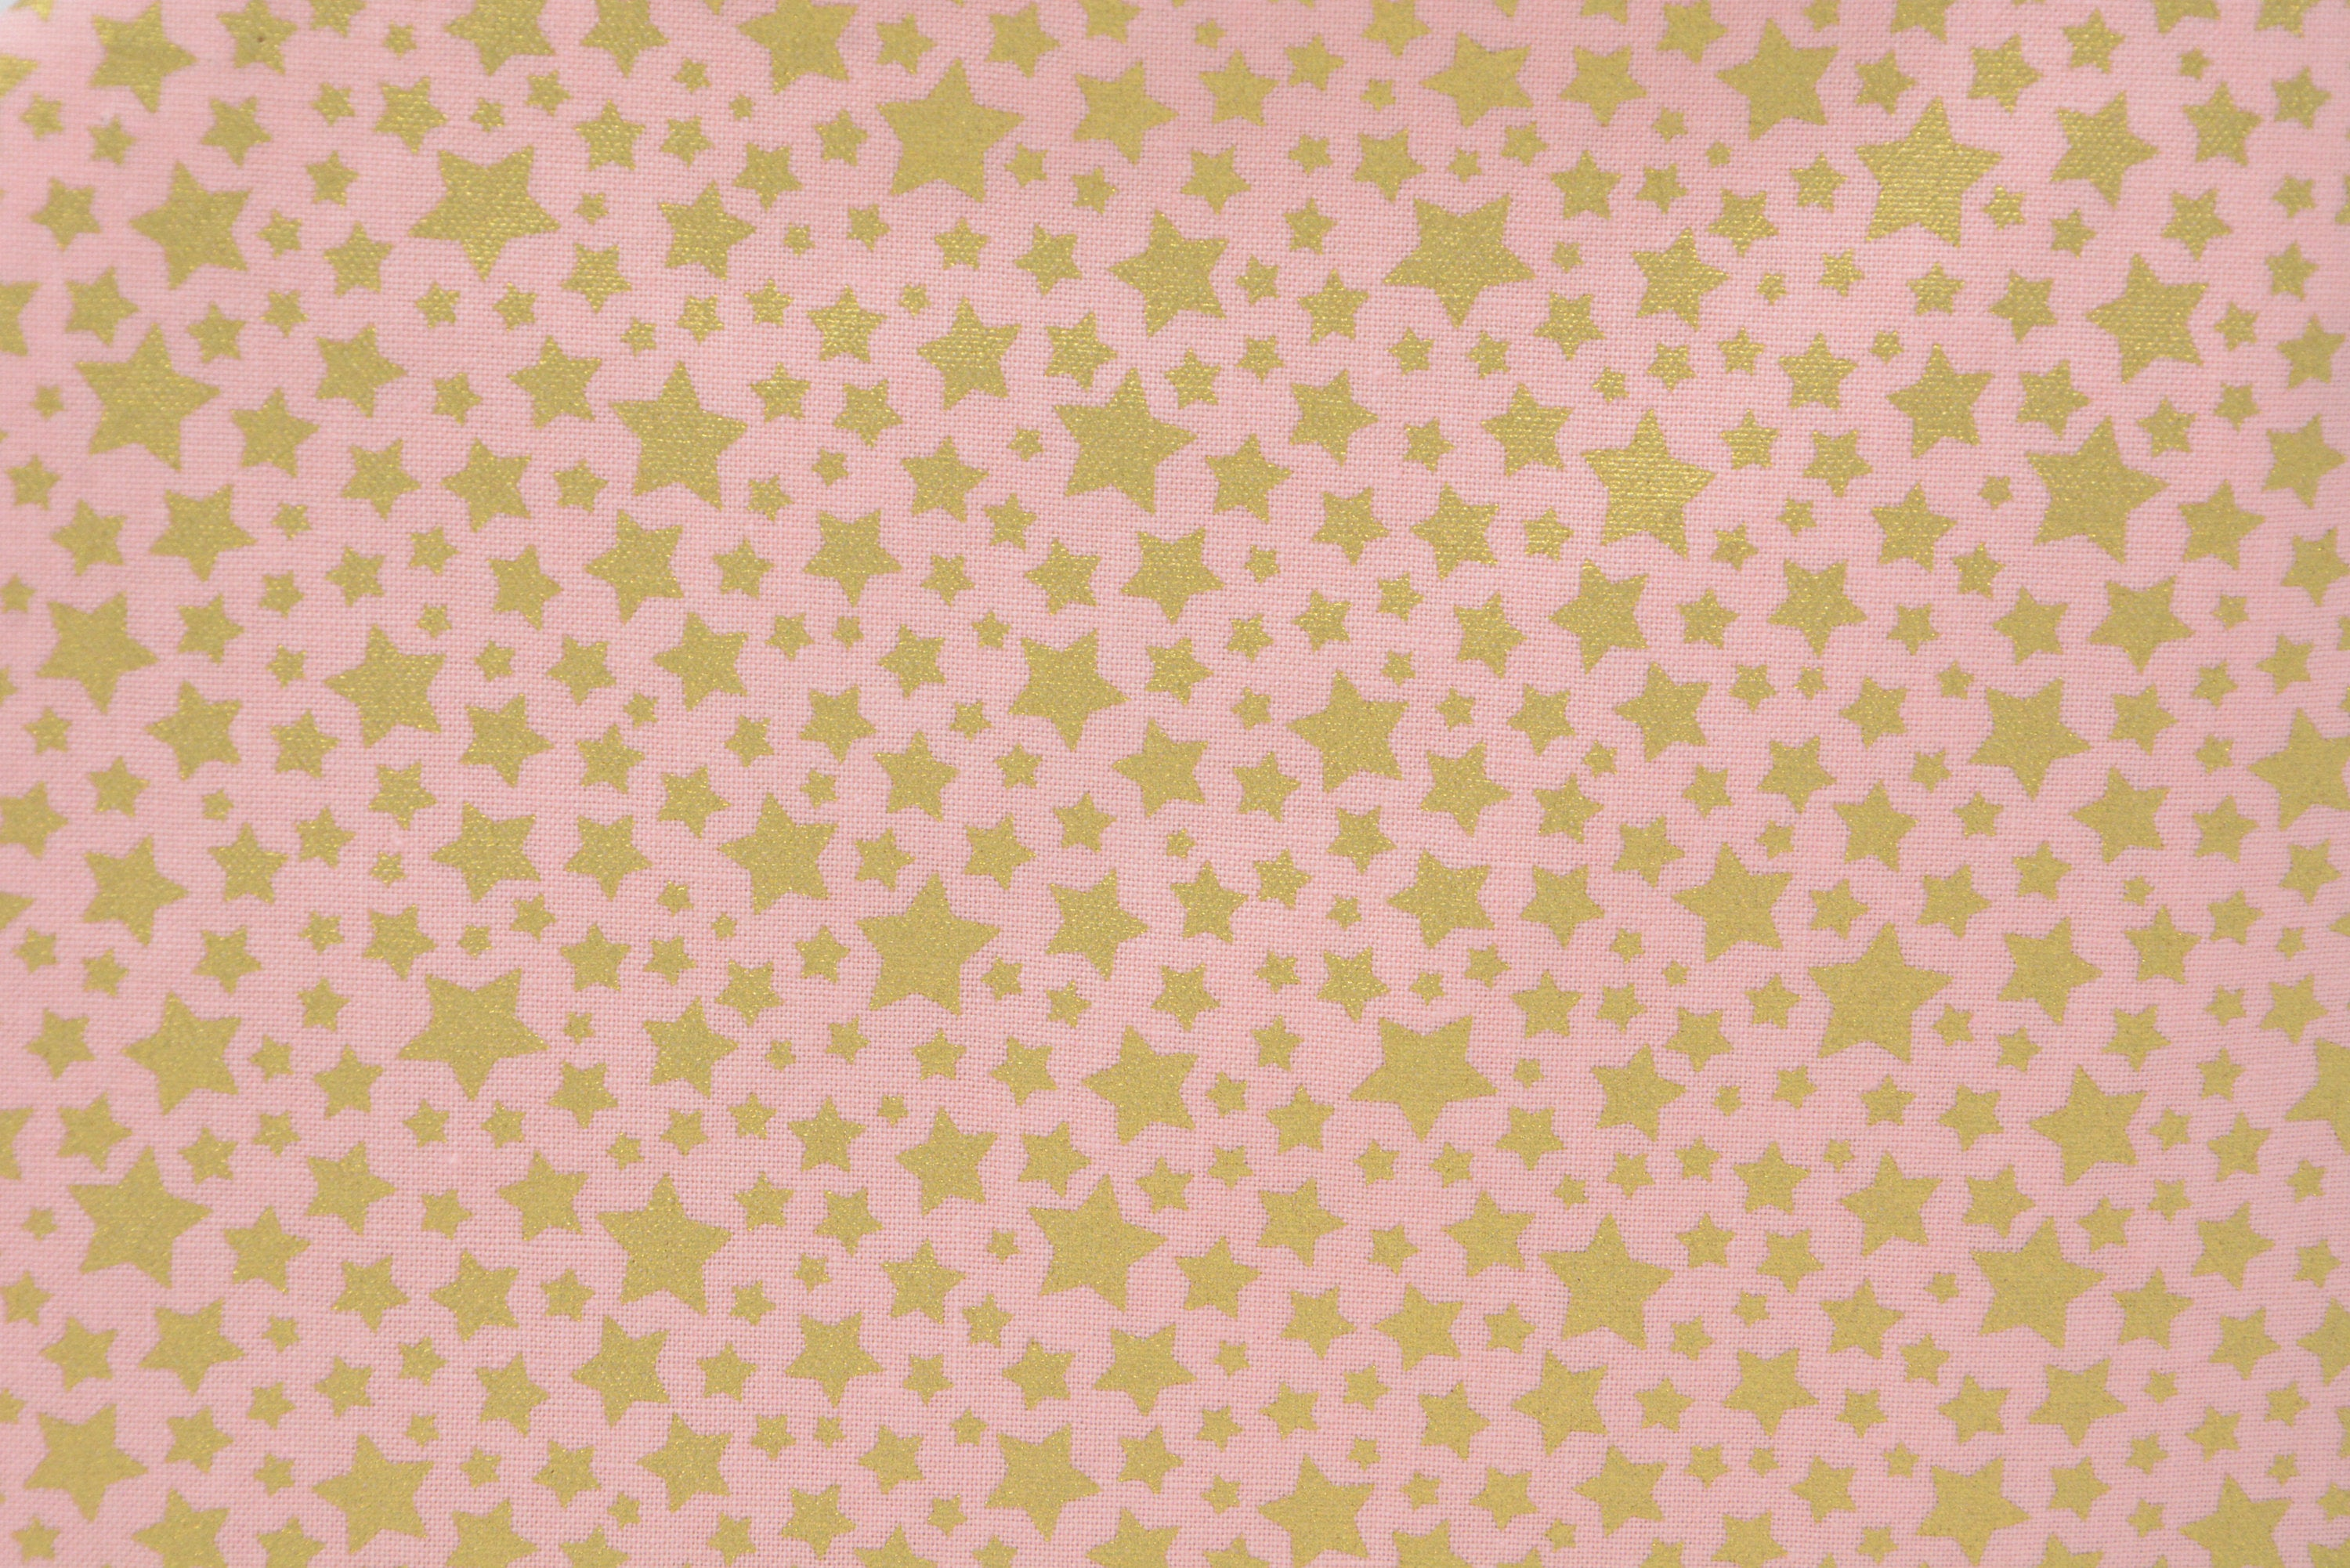 Gold Stars on Pink with *Gold Print*